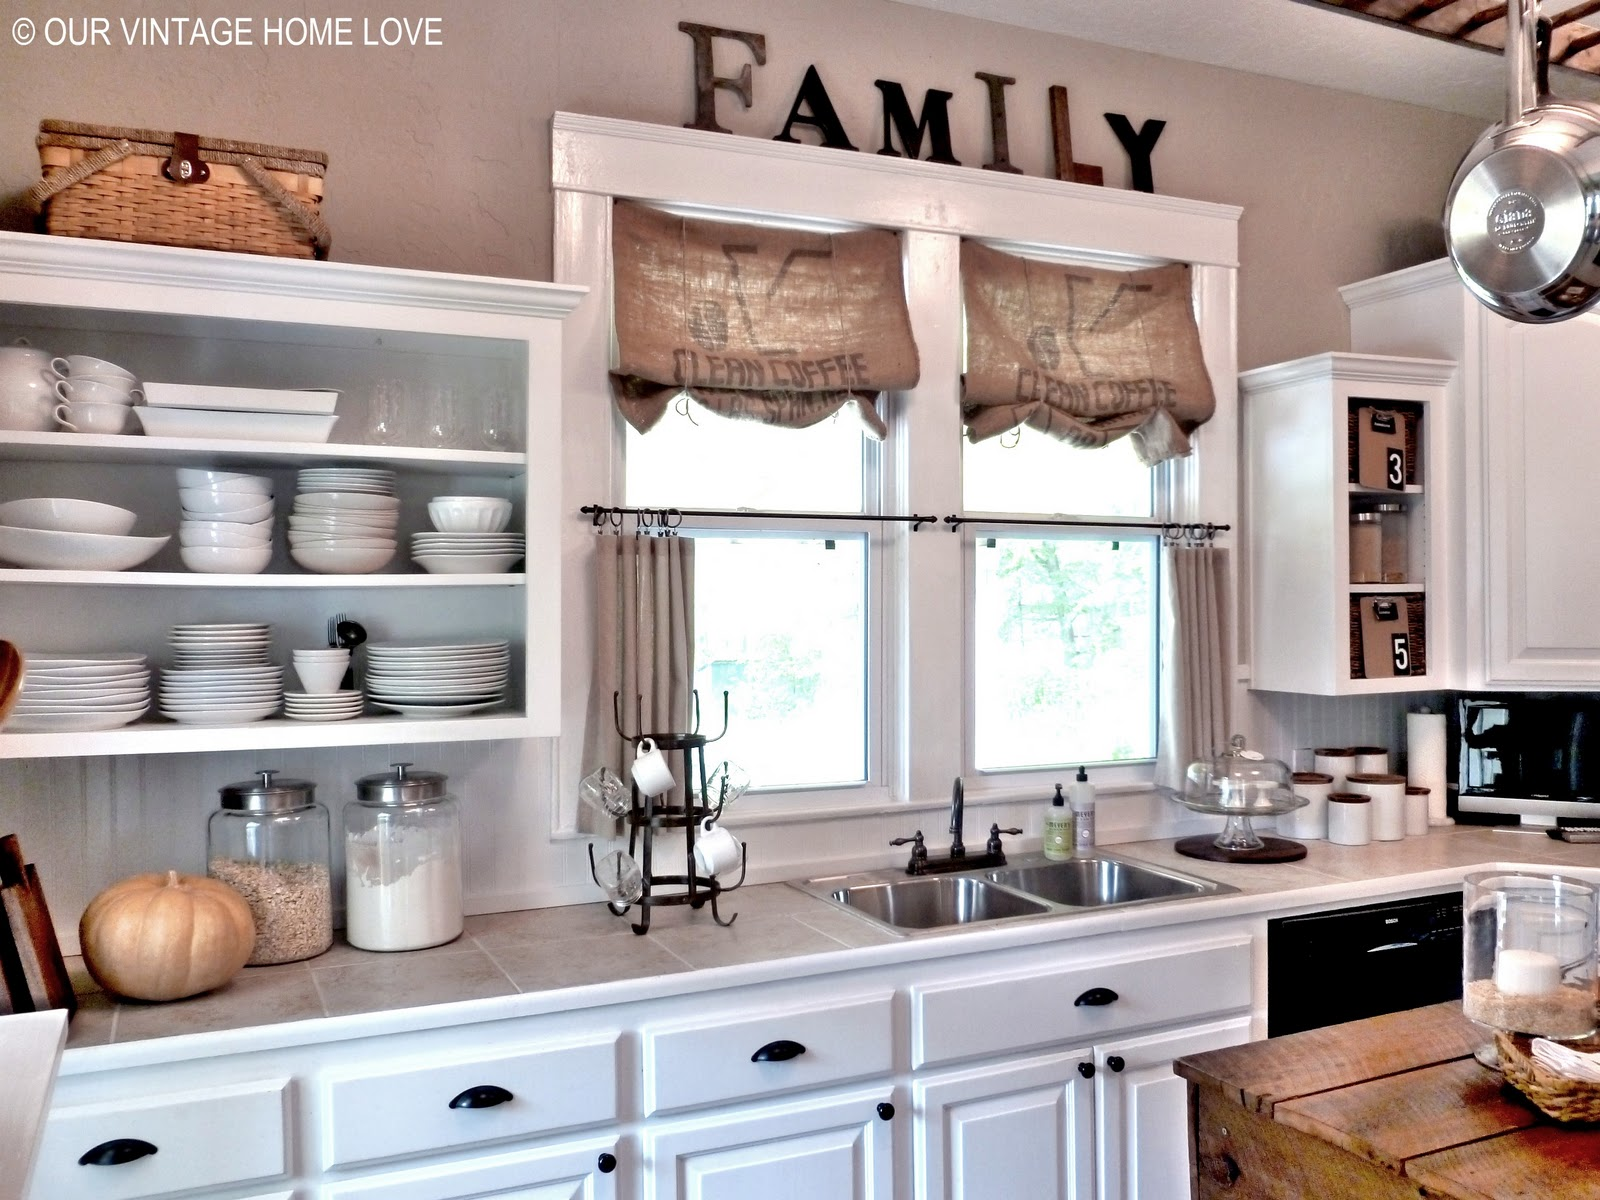 Vintage home love inexpensive window treatments and a - Curtain designs for kitchen windows ...